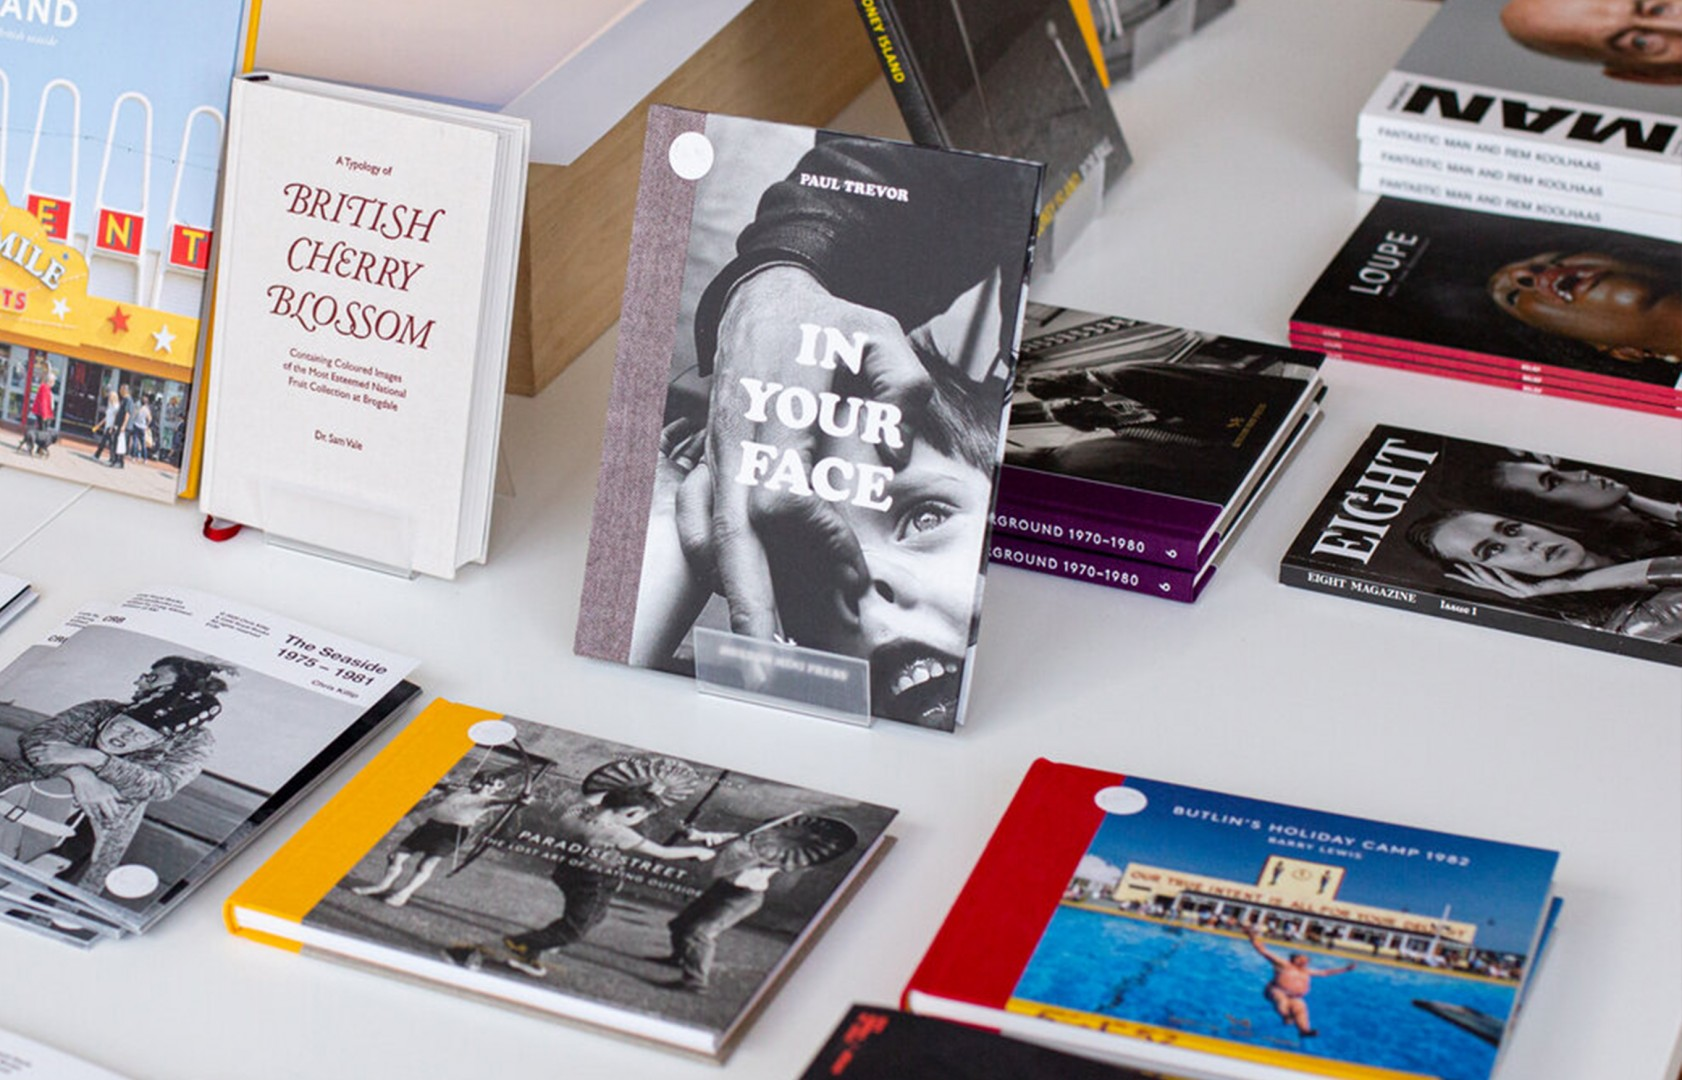 A selection of photographic journals